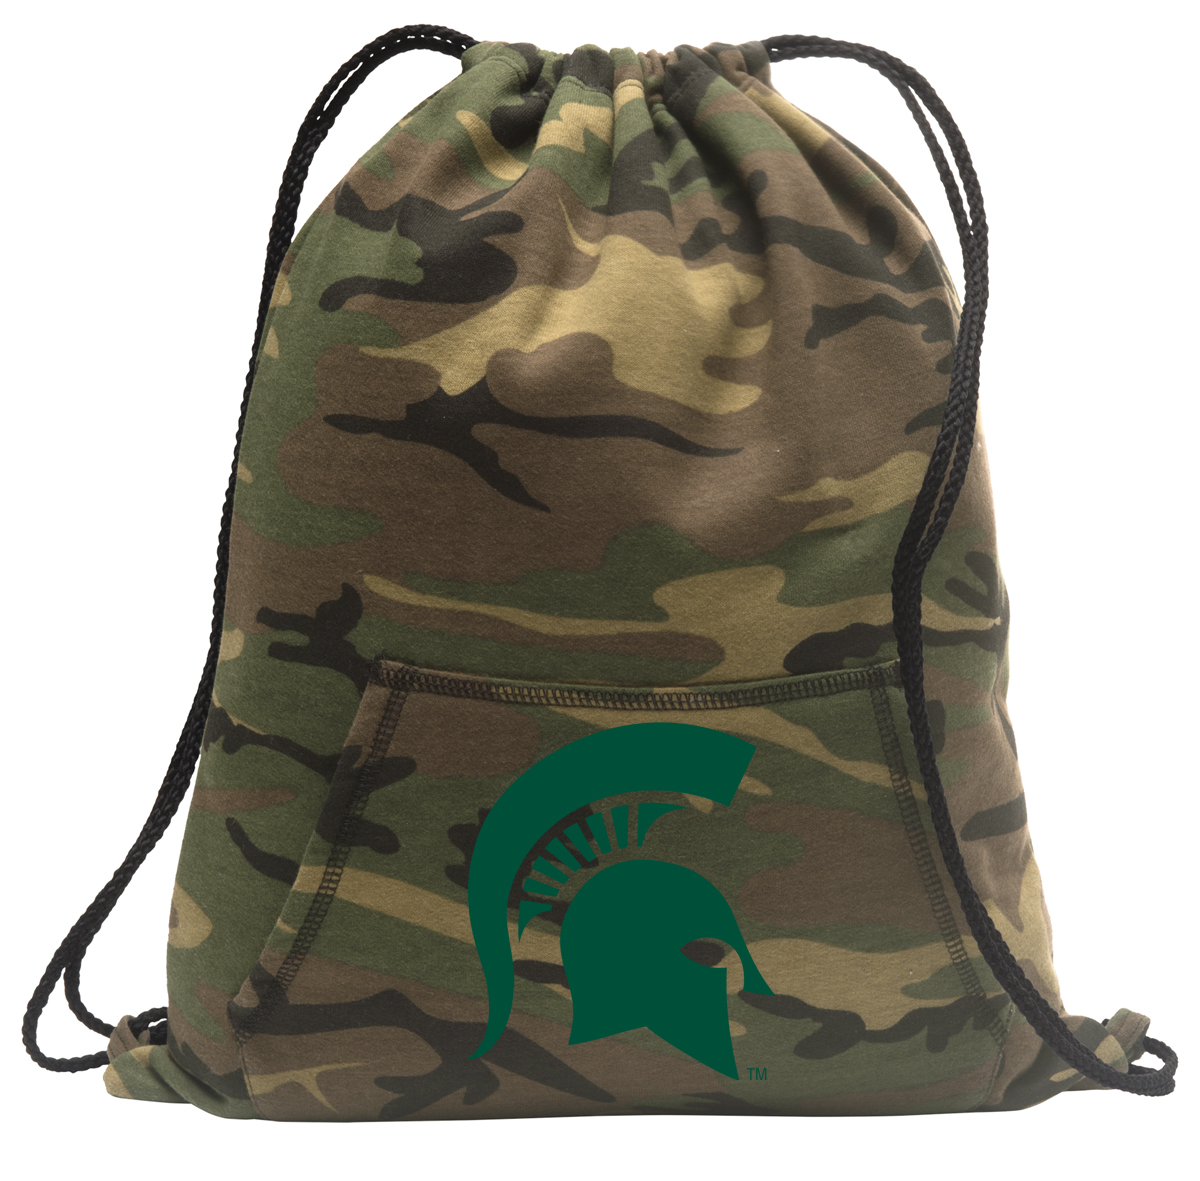 Michigan State Camo Drawstring Bag Camo - Walmart.com